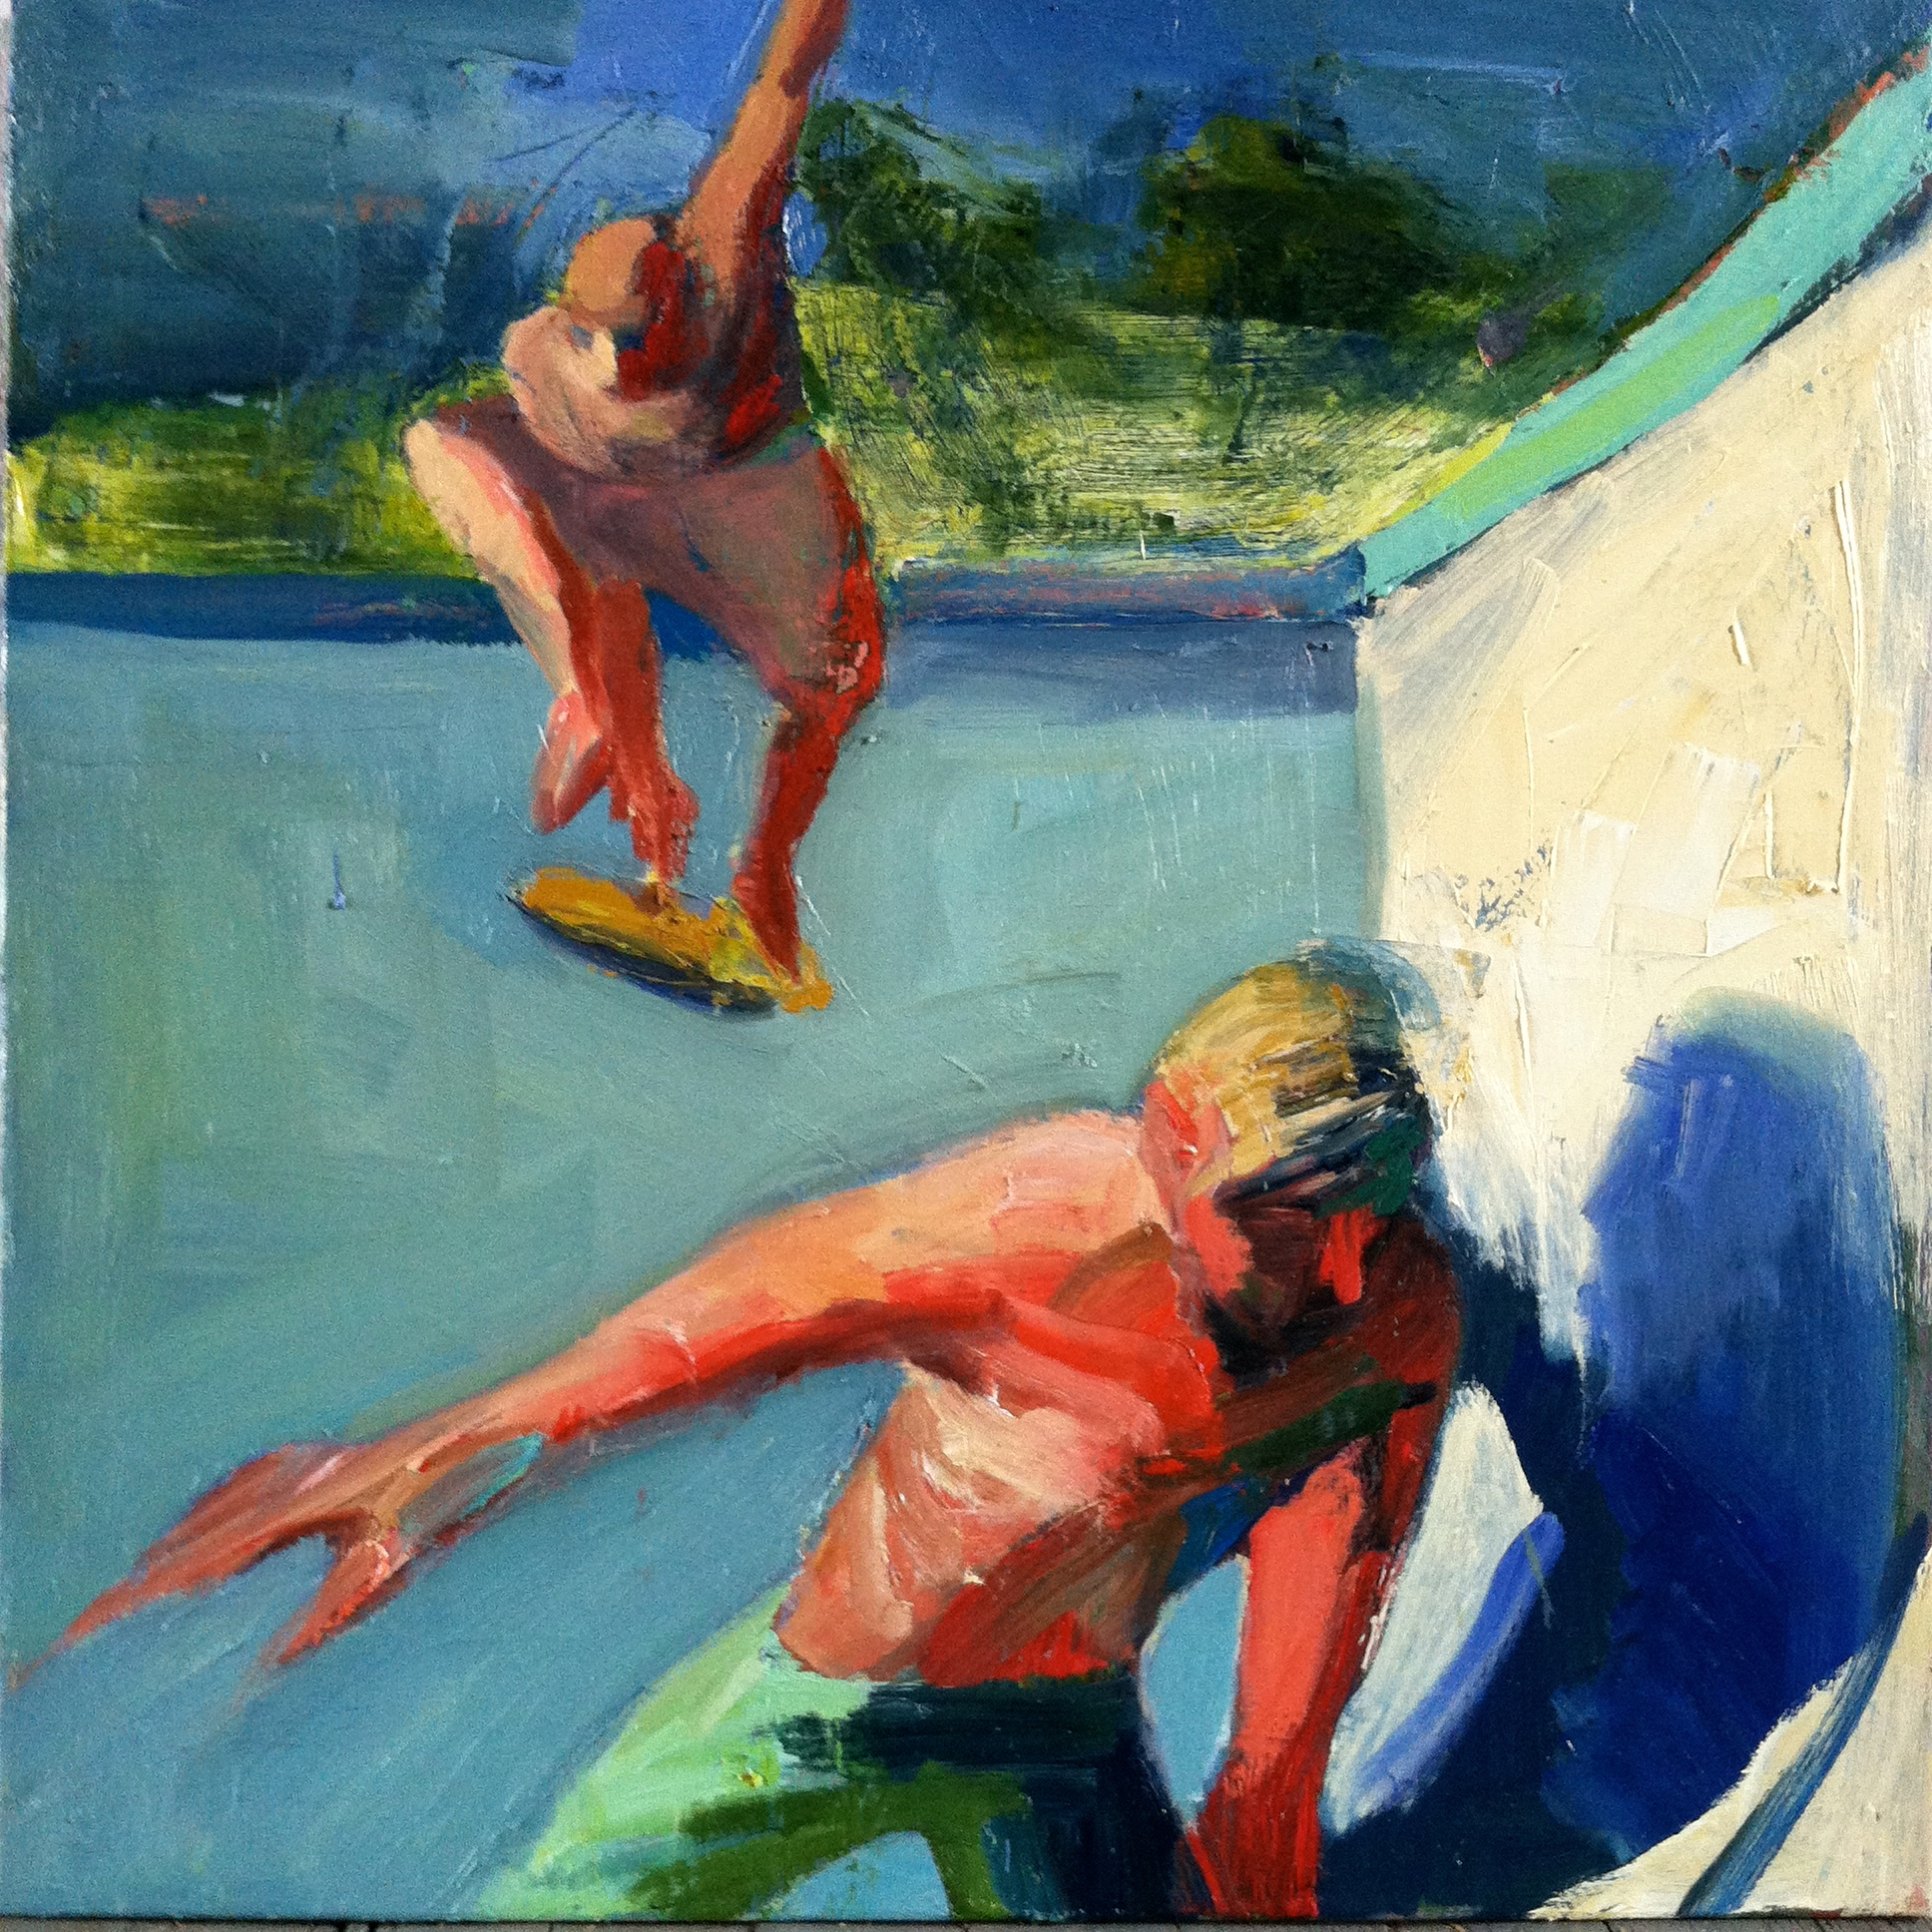 Dropping in, oil on canvas, 30x30 inches, 2016